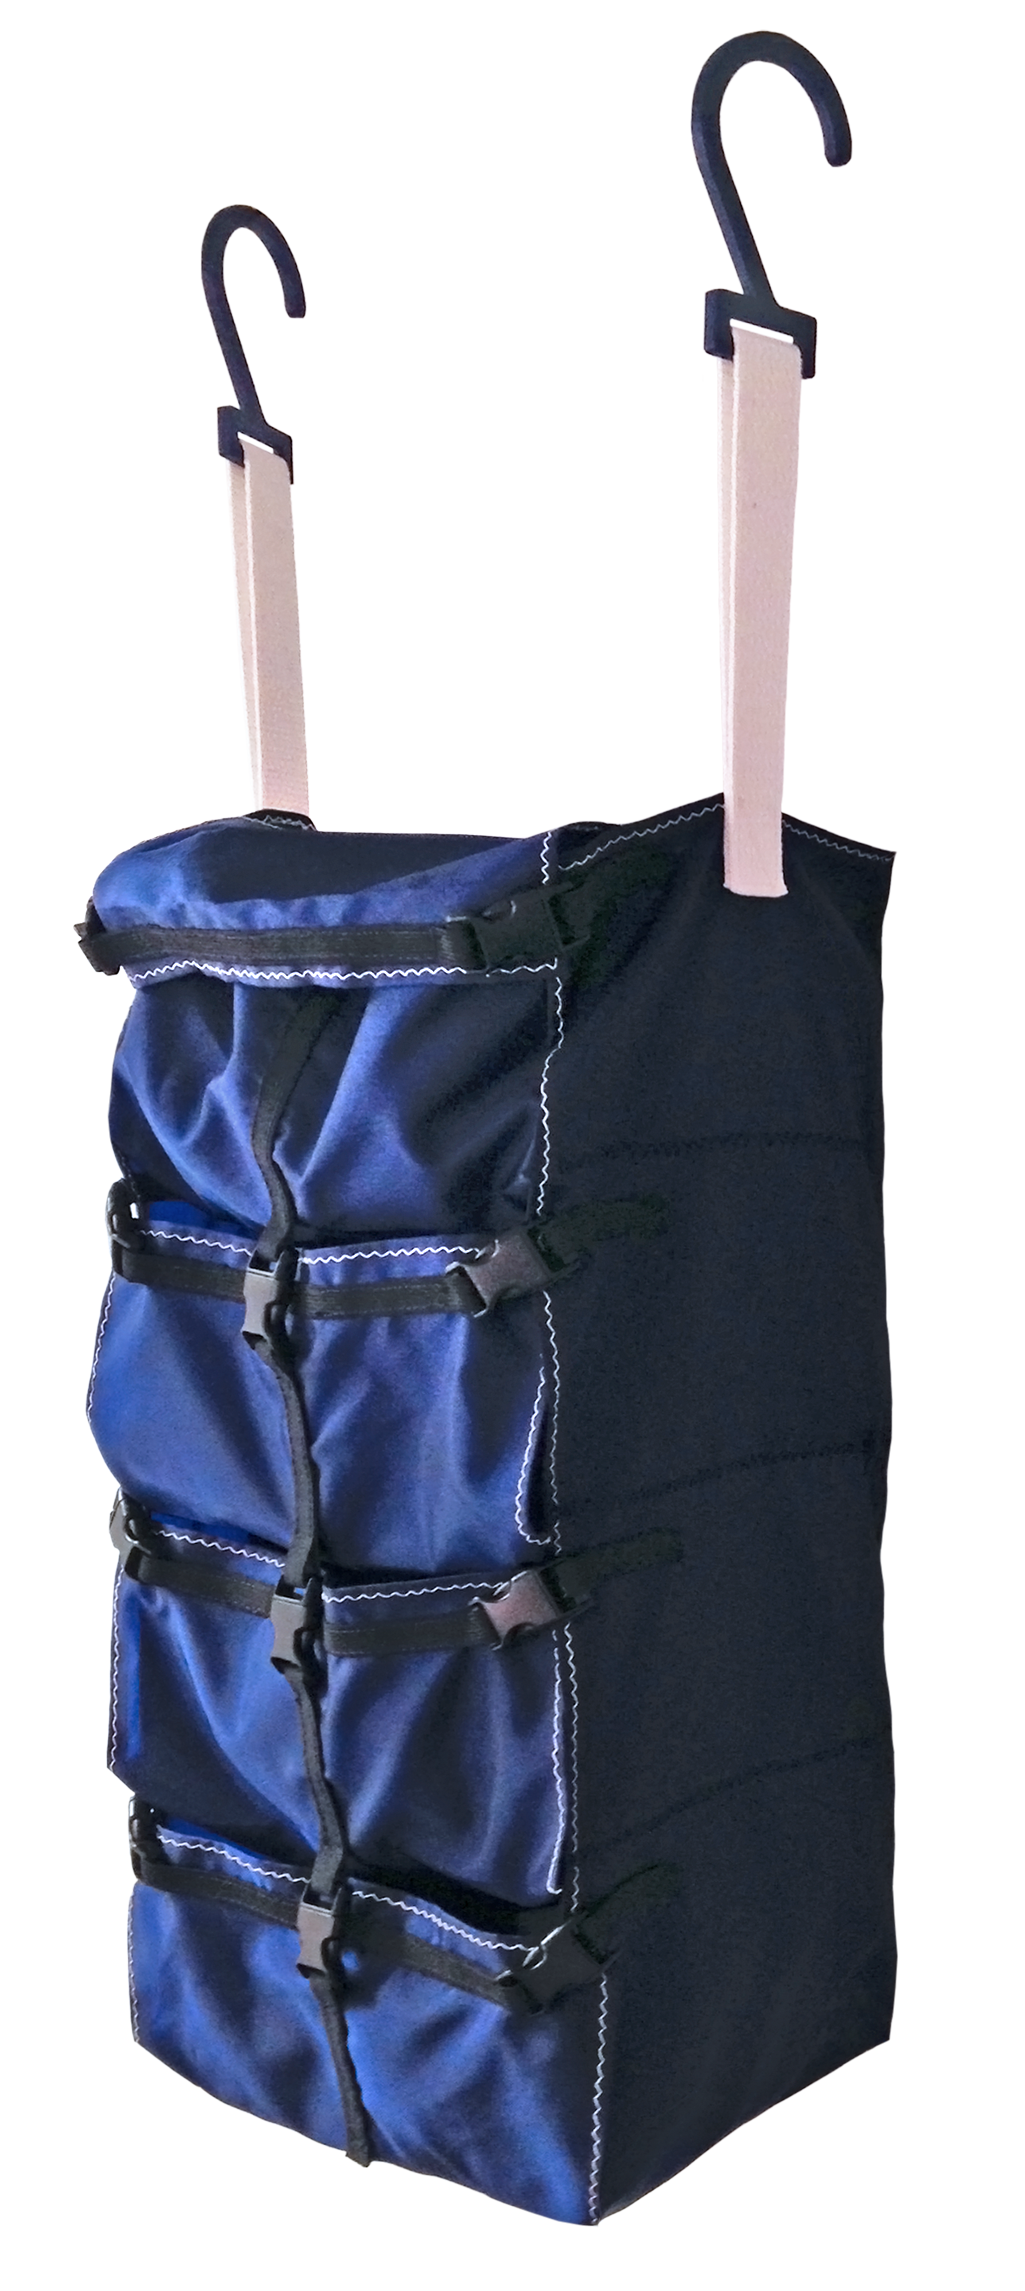 The Ultimate Backpack Organizer U2013 Pack Gear - Unpack Backpack, Transparent background PNG HD thumbnail